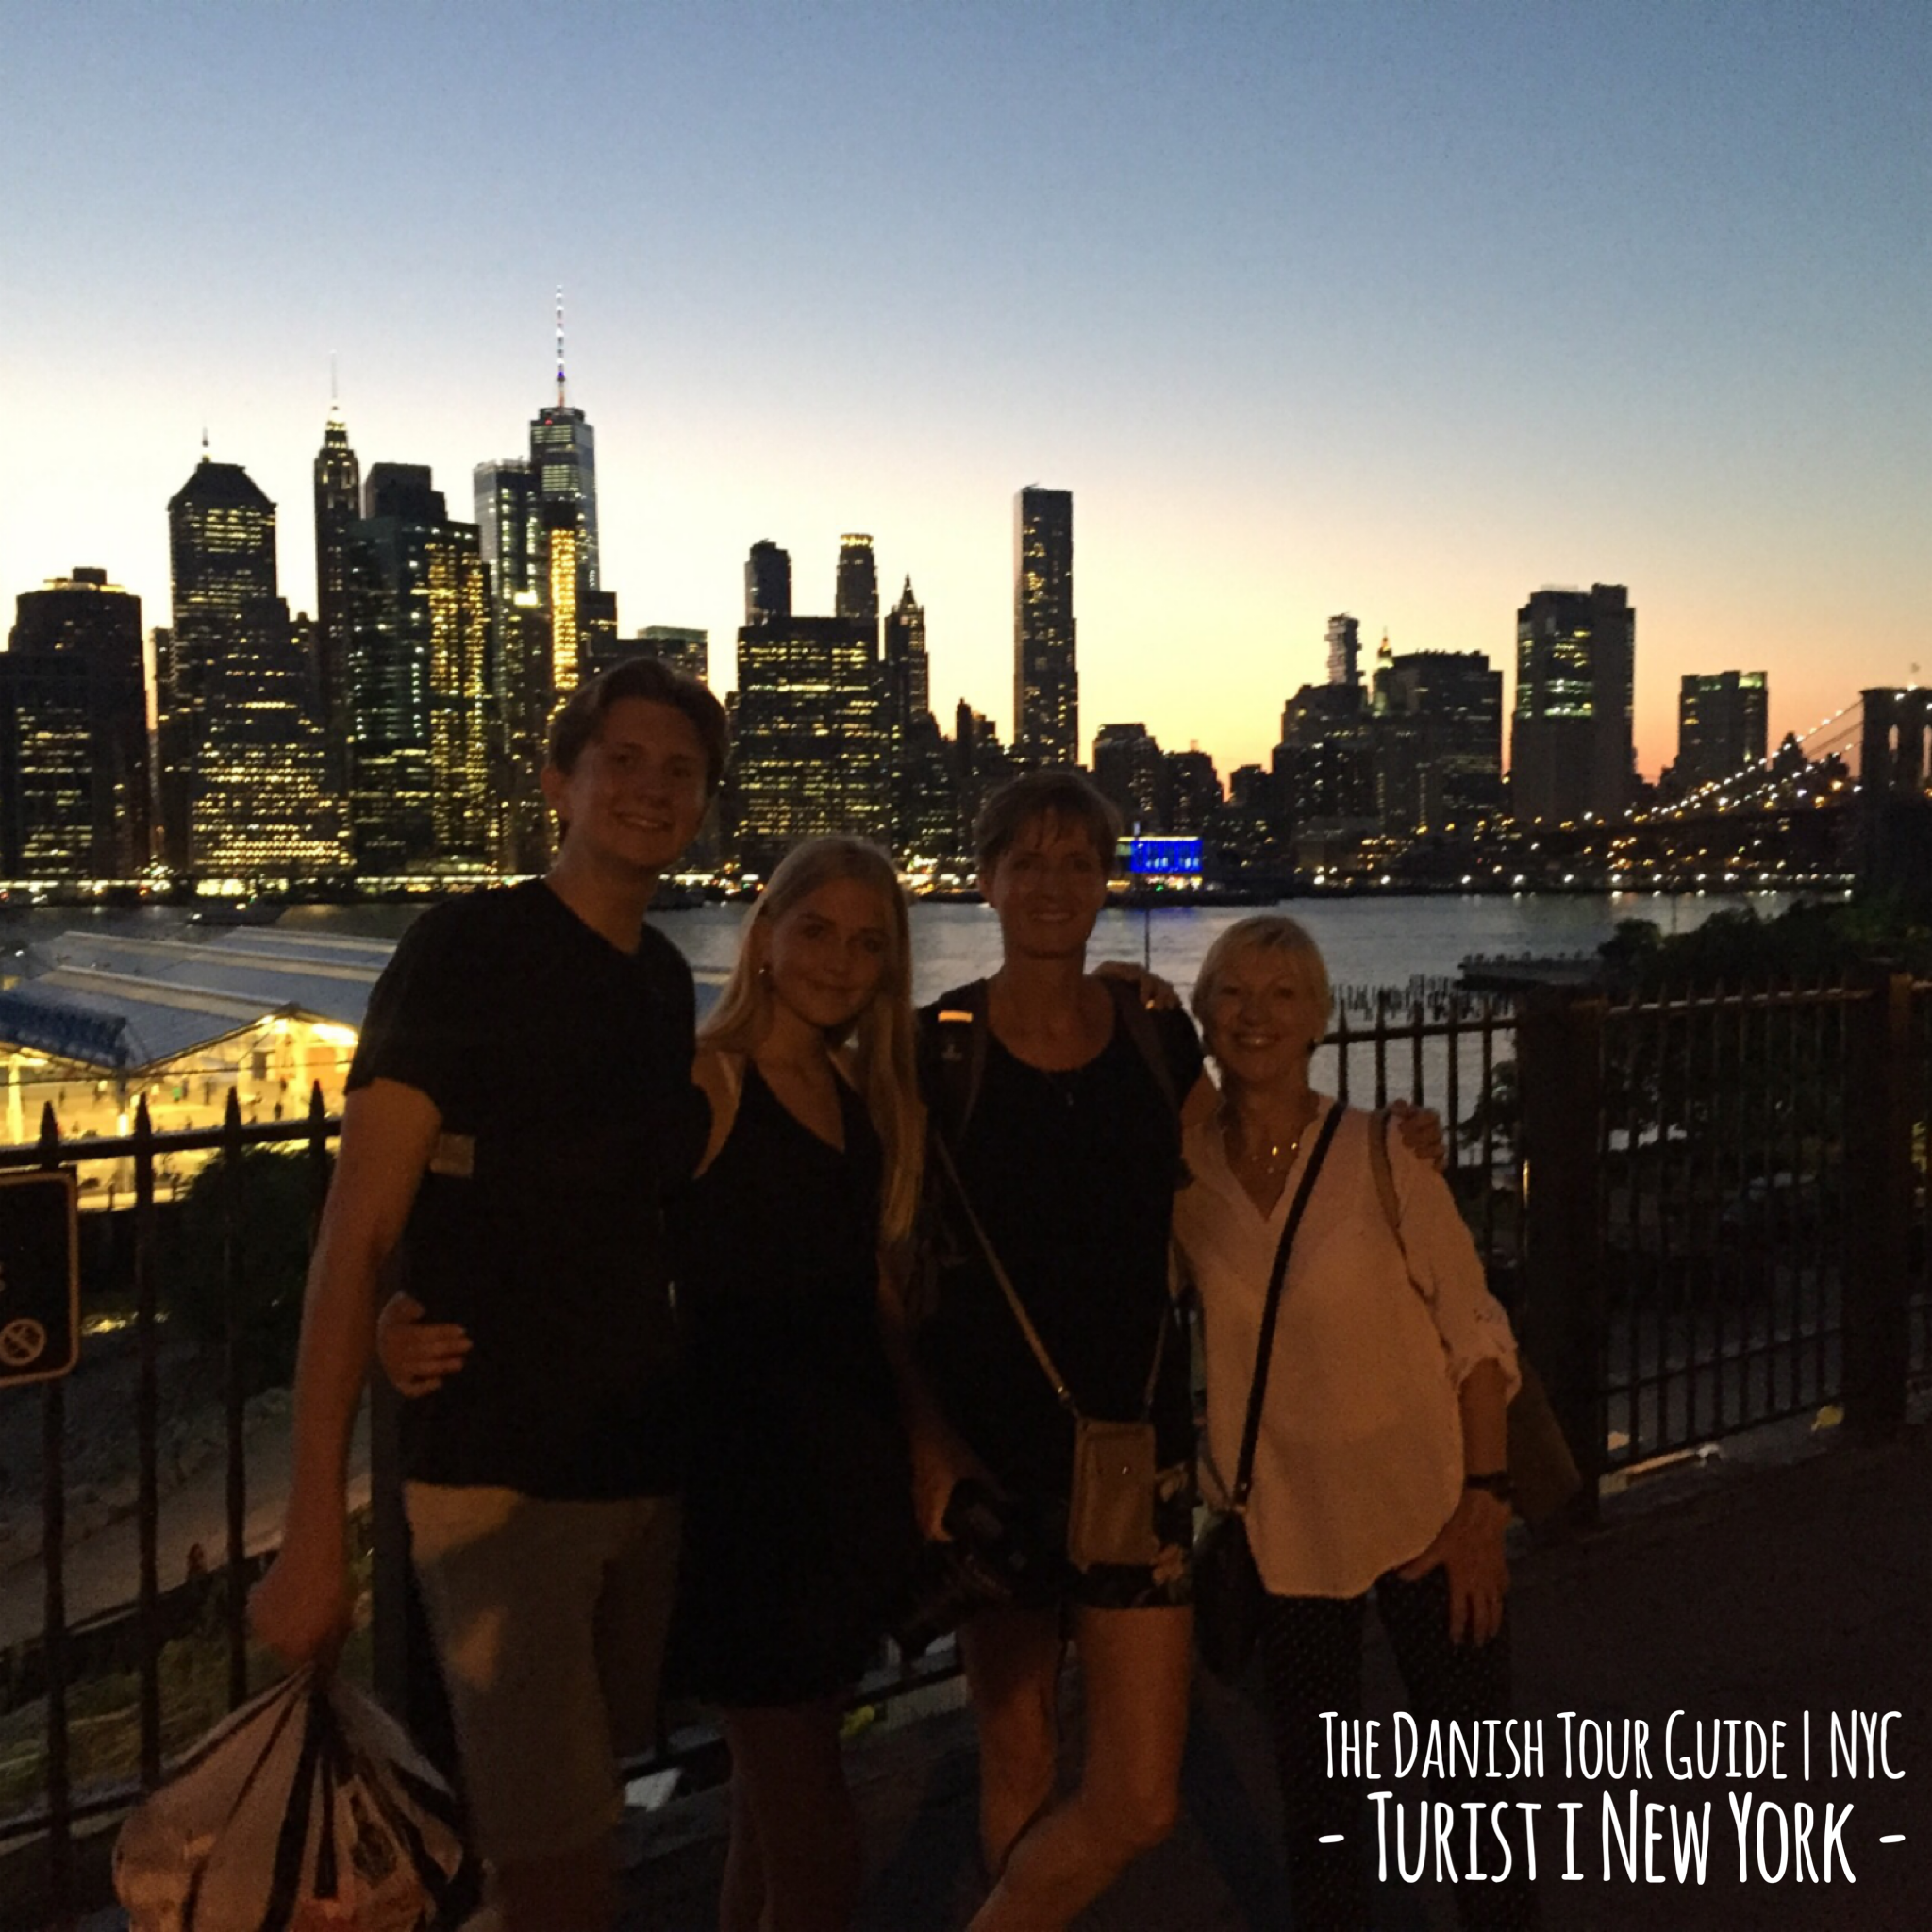 3 timers aften-tour i brooklyn heights nu med brooklyn bridge